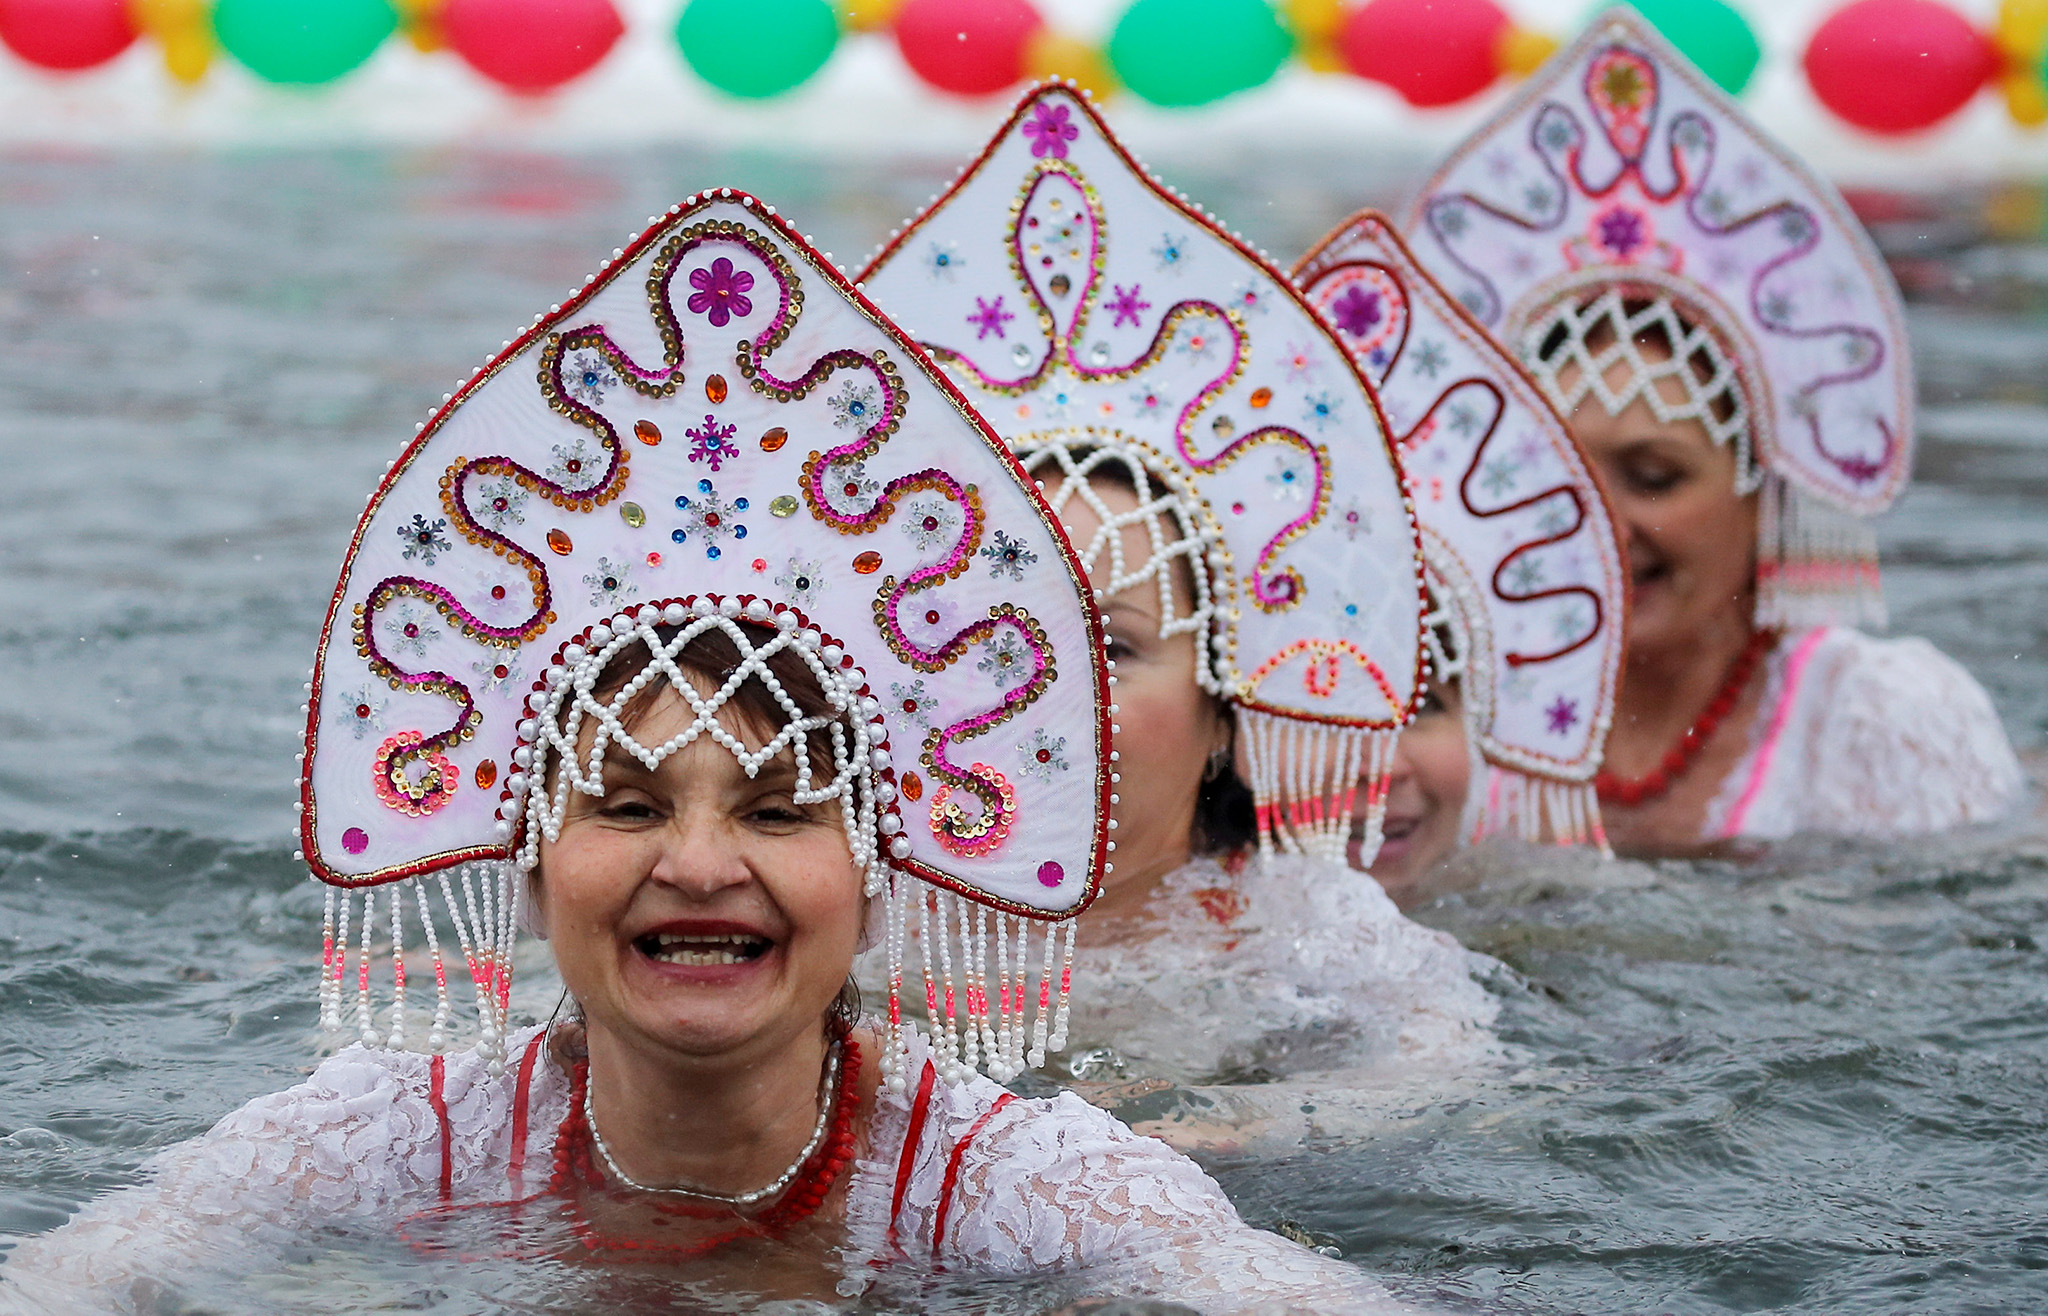 Participants wearing Kokoshnik, the Russian traditional headwear, perform during winter swimming festival in the town of Podolsk, south of Moscow, Russia January 5, 2017. REUTERS/Maxim Shemetov